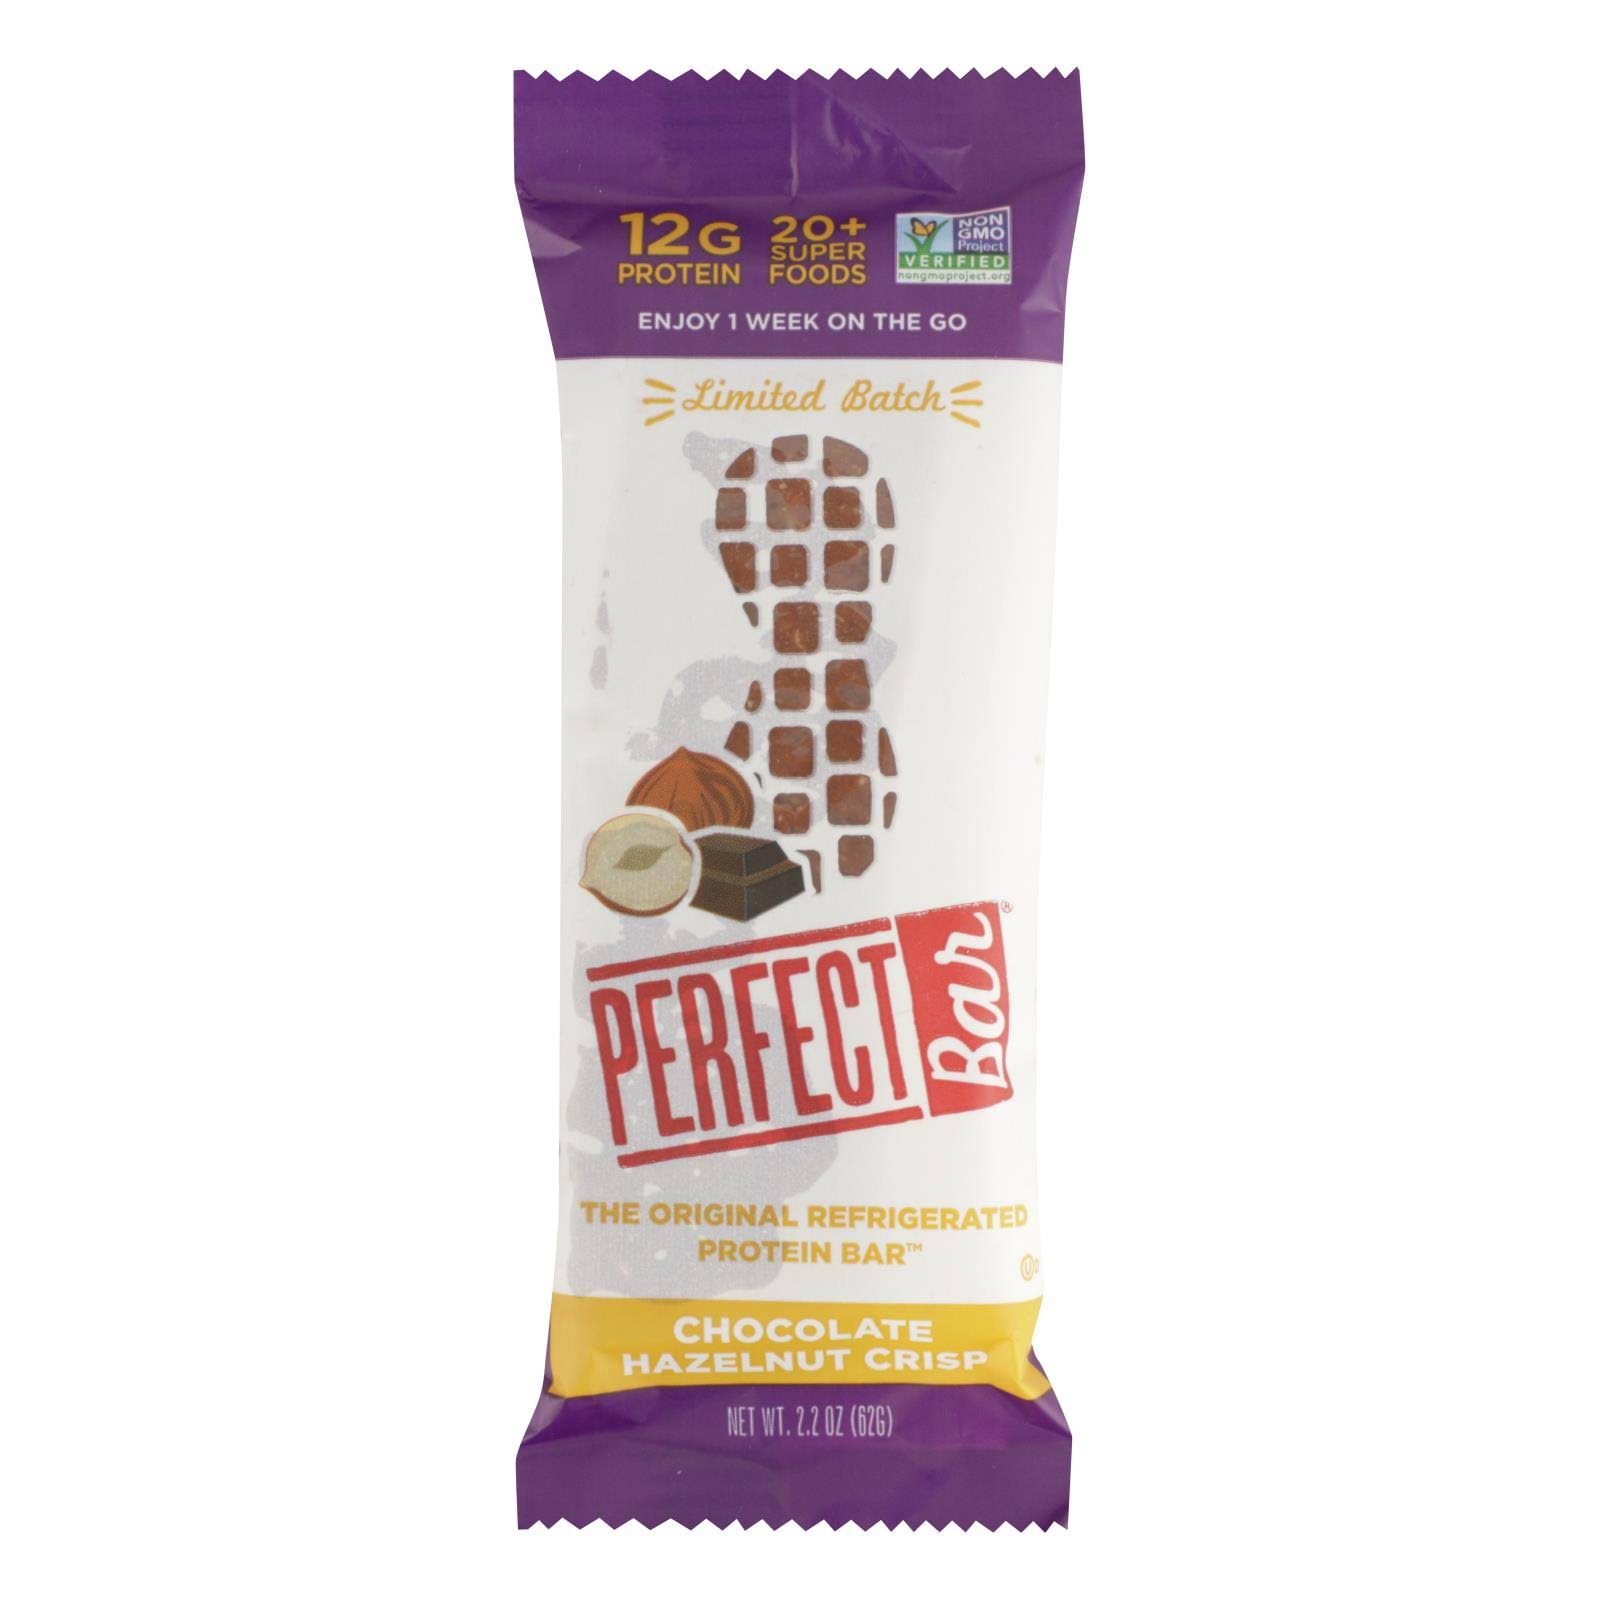 Perfect Foods: Chocolate Hazelnut Crisp Bar, 2.20 oz